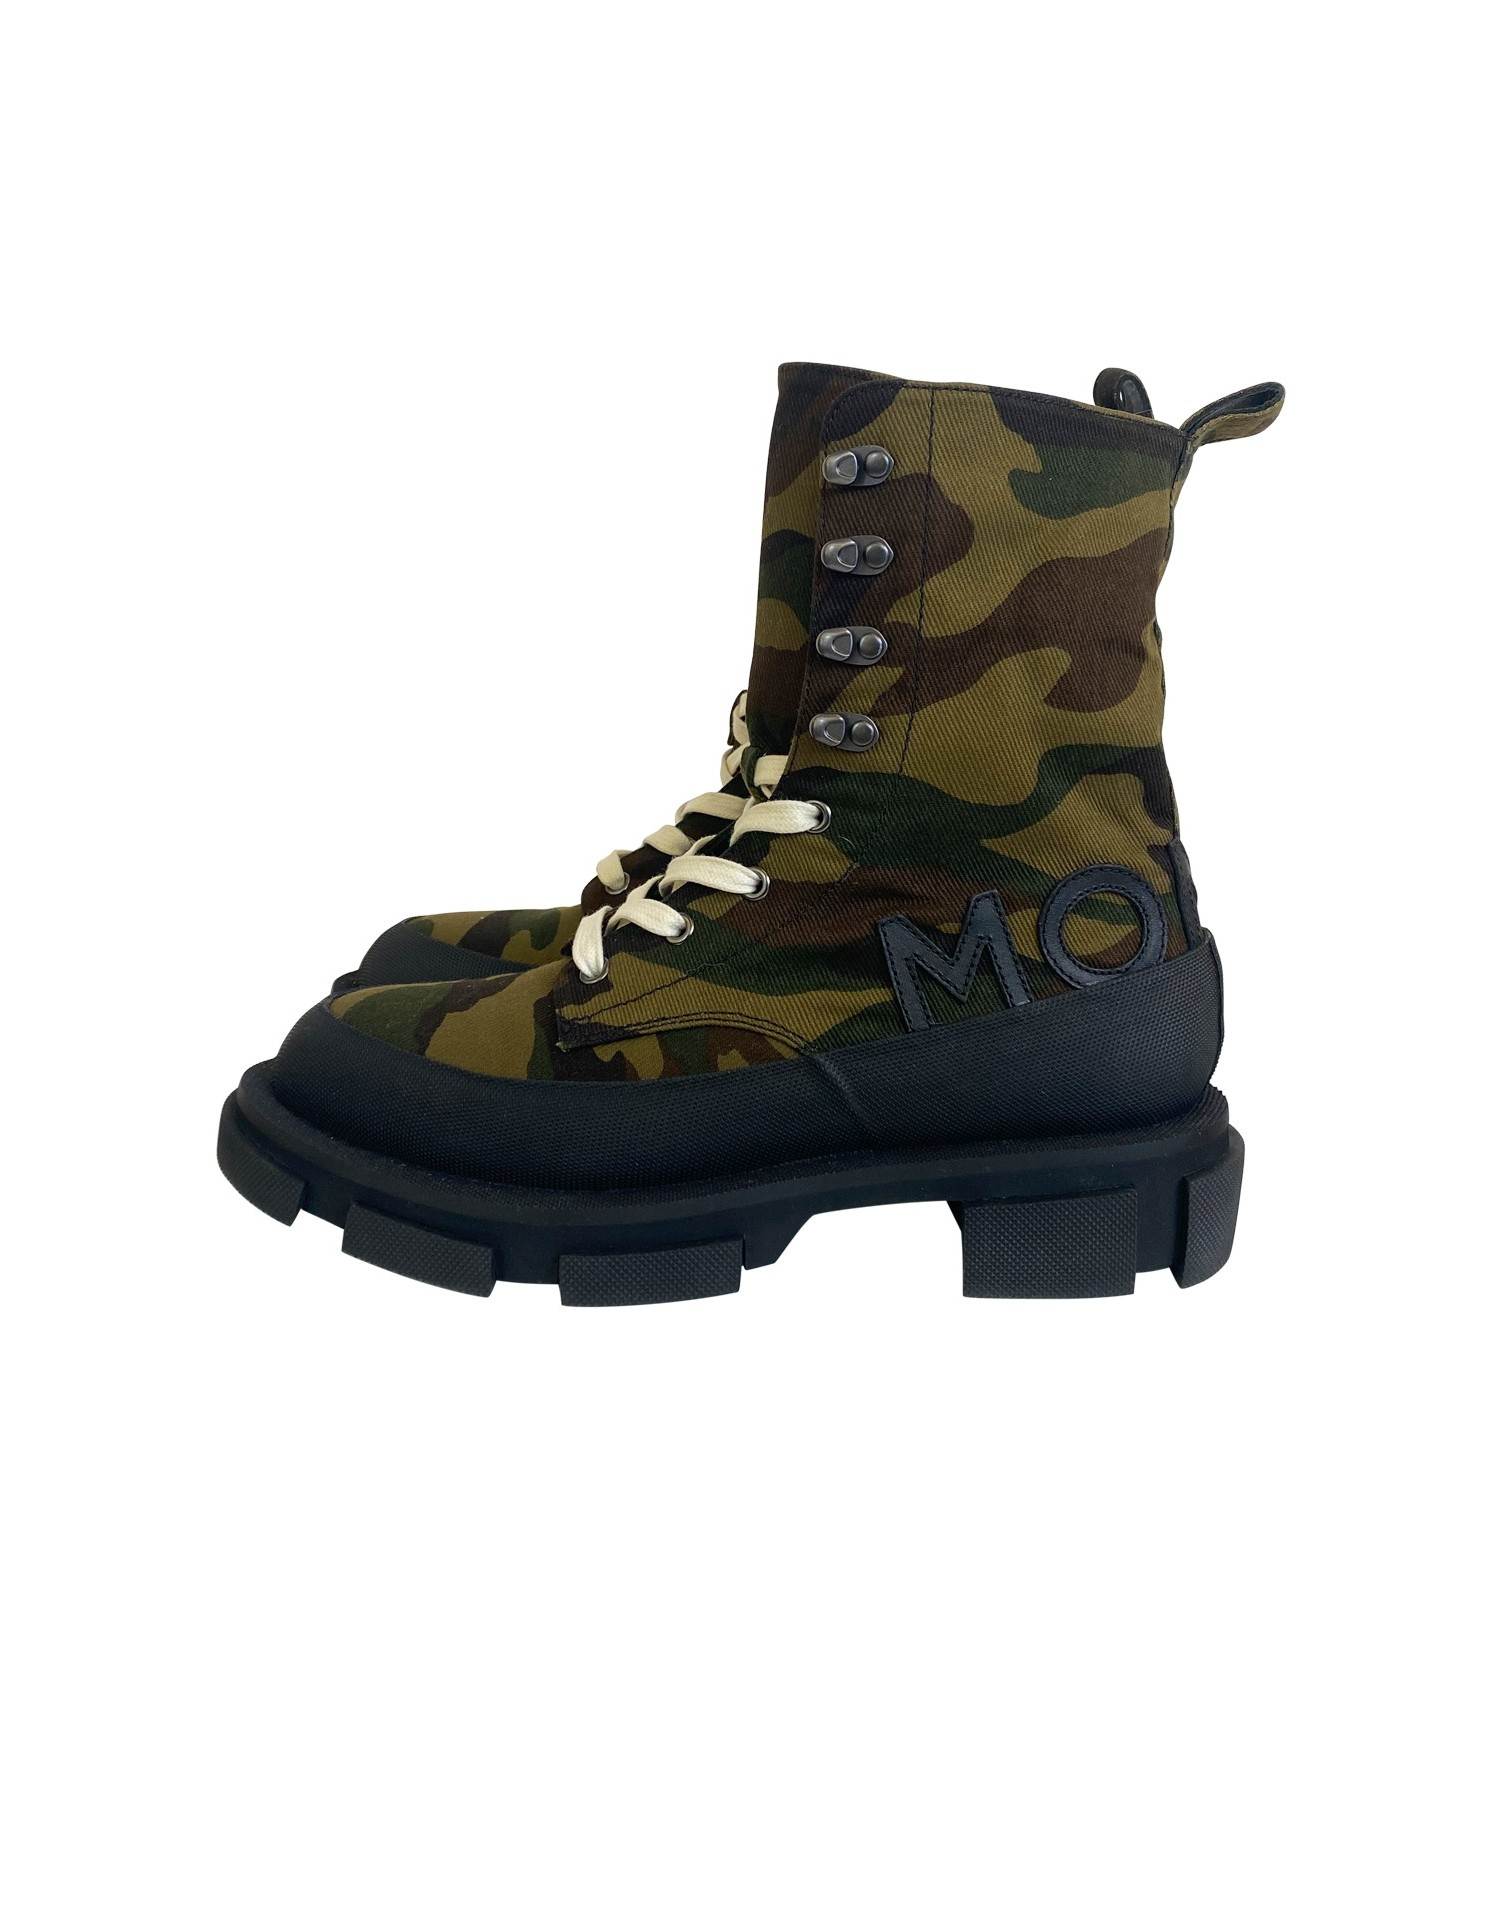 BOTH x MONSE Gao High Boots in Camo Print Side View